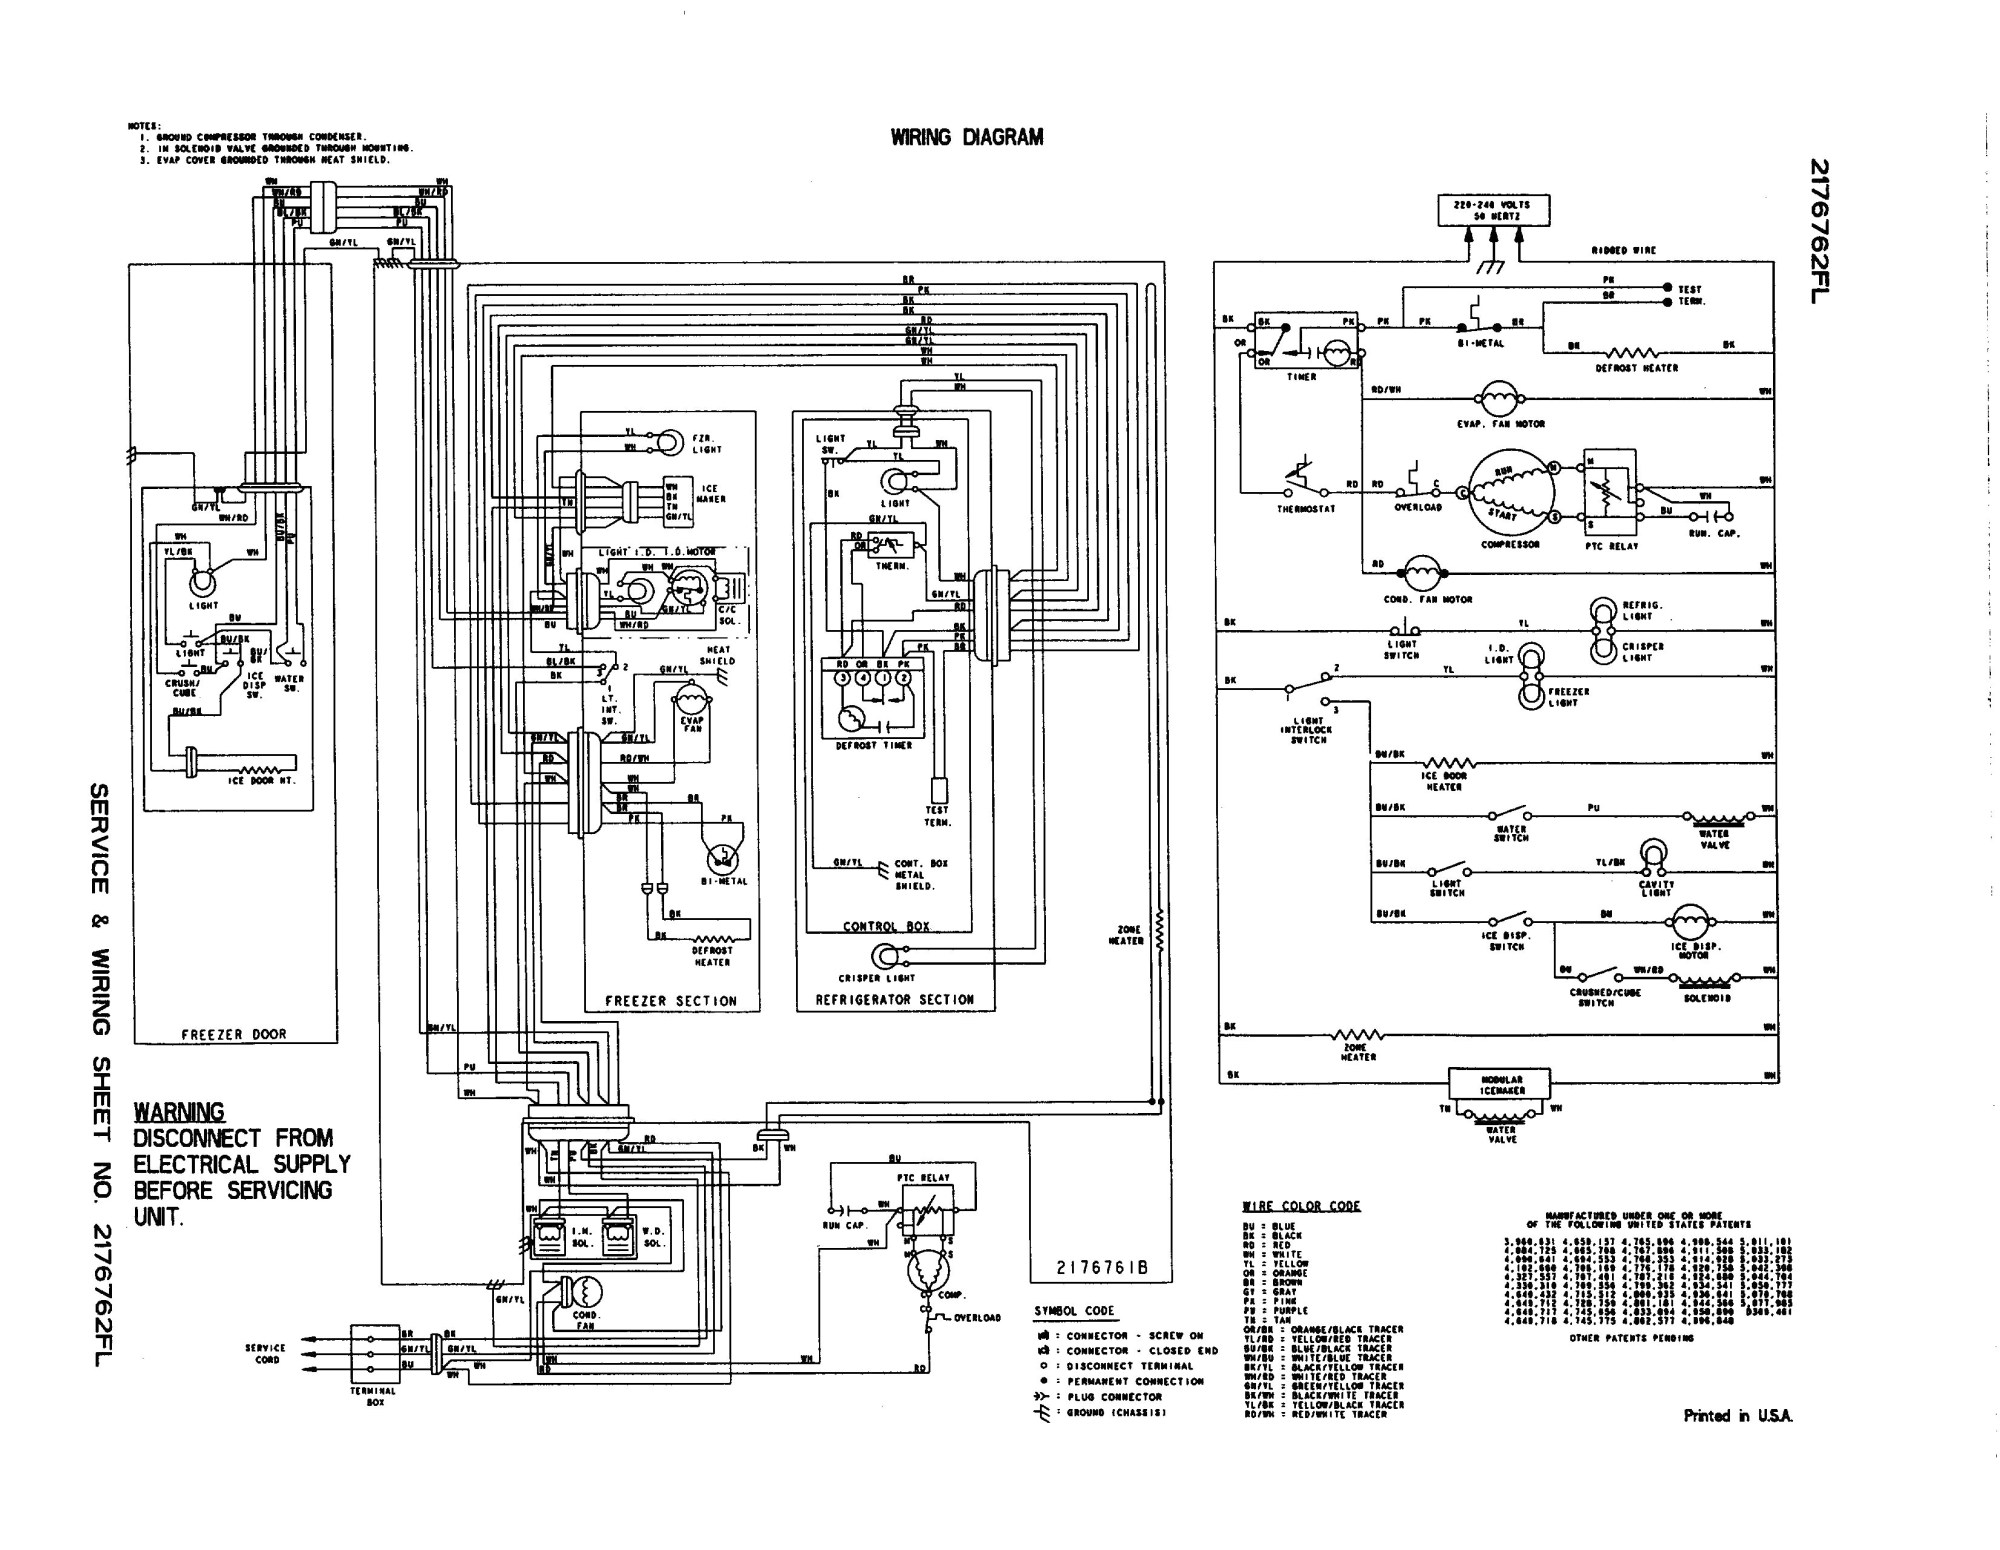 hight resolution of ge schematic diagrams wiring diagram operations ge schematic diagrams